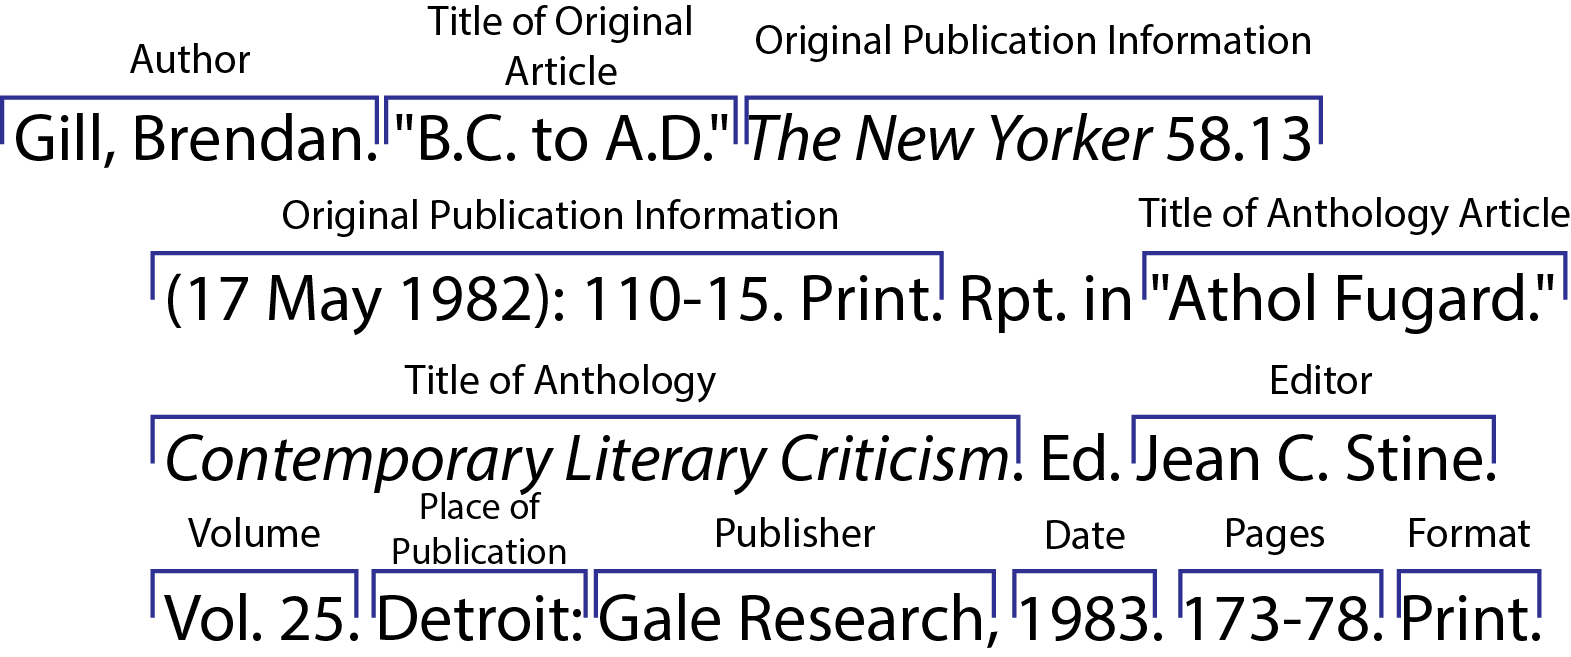 print sources - citing information - libguides at university of